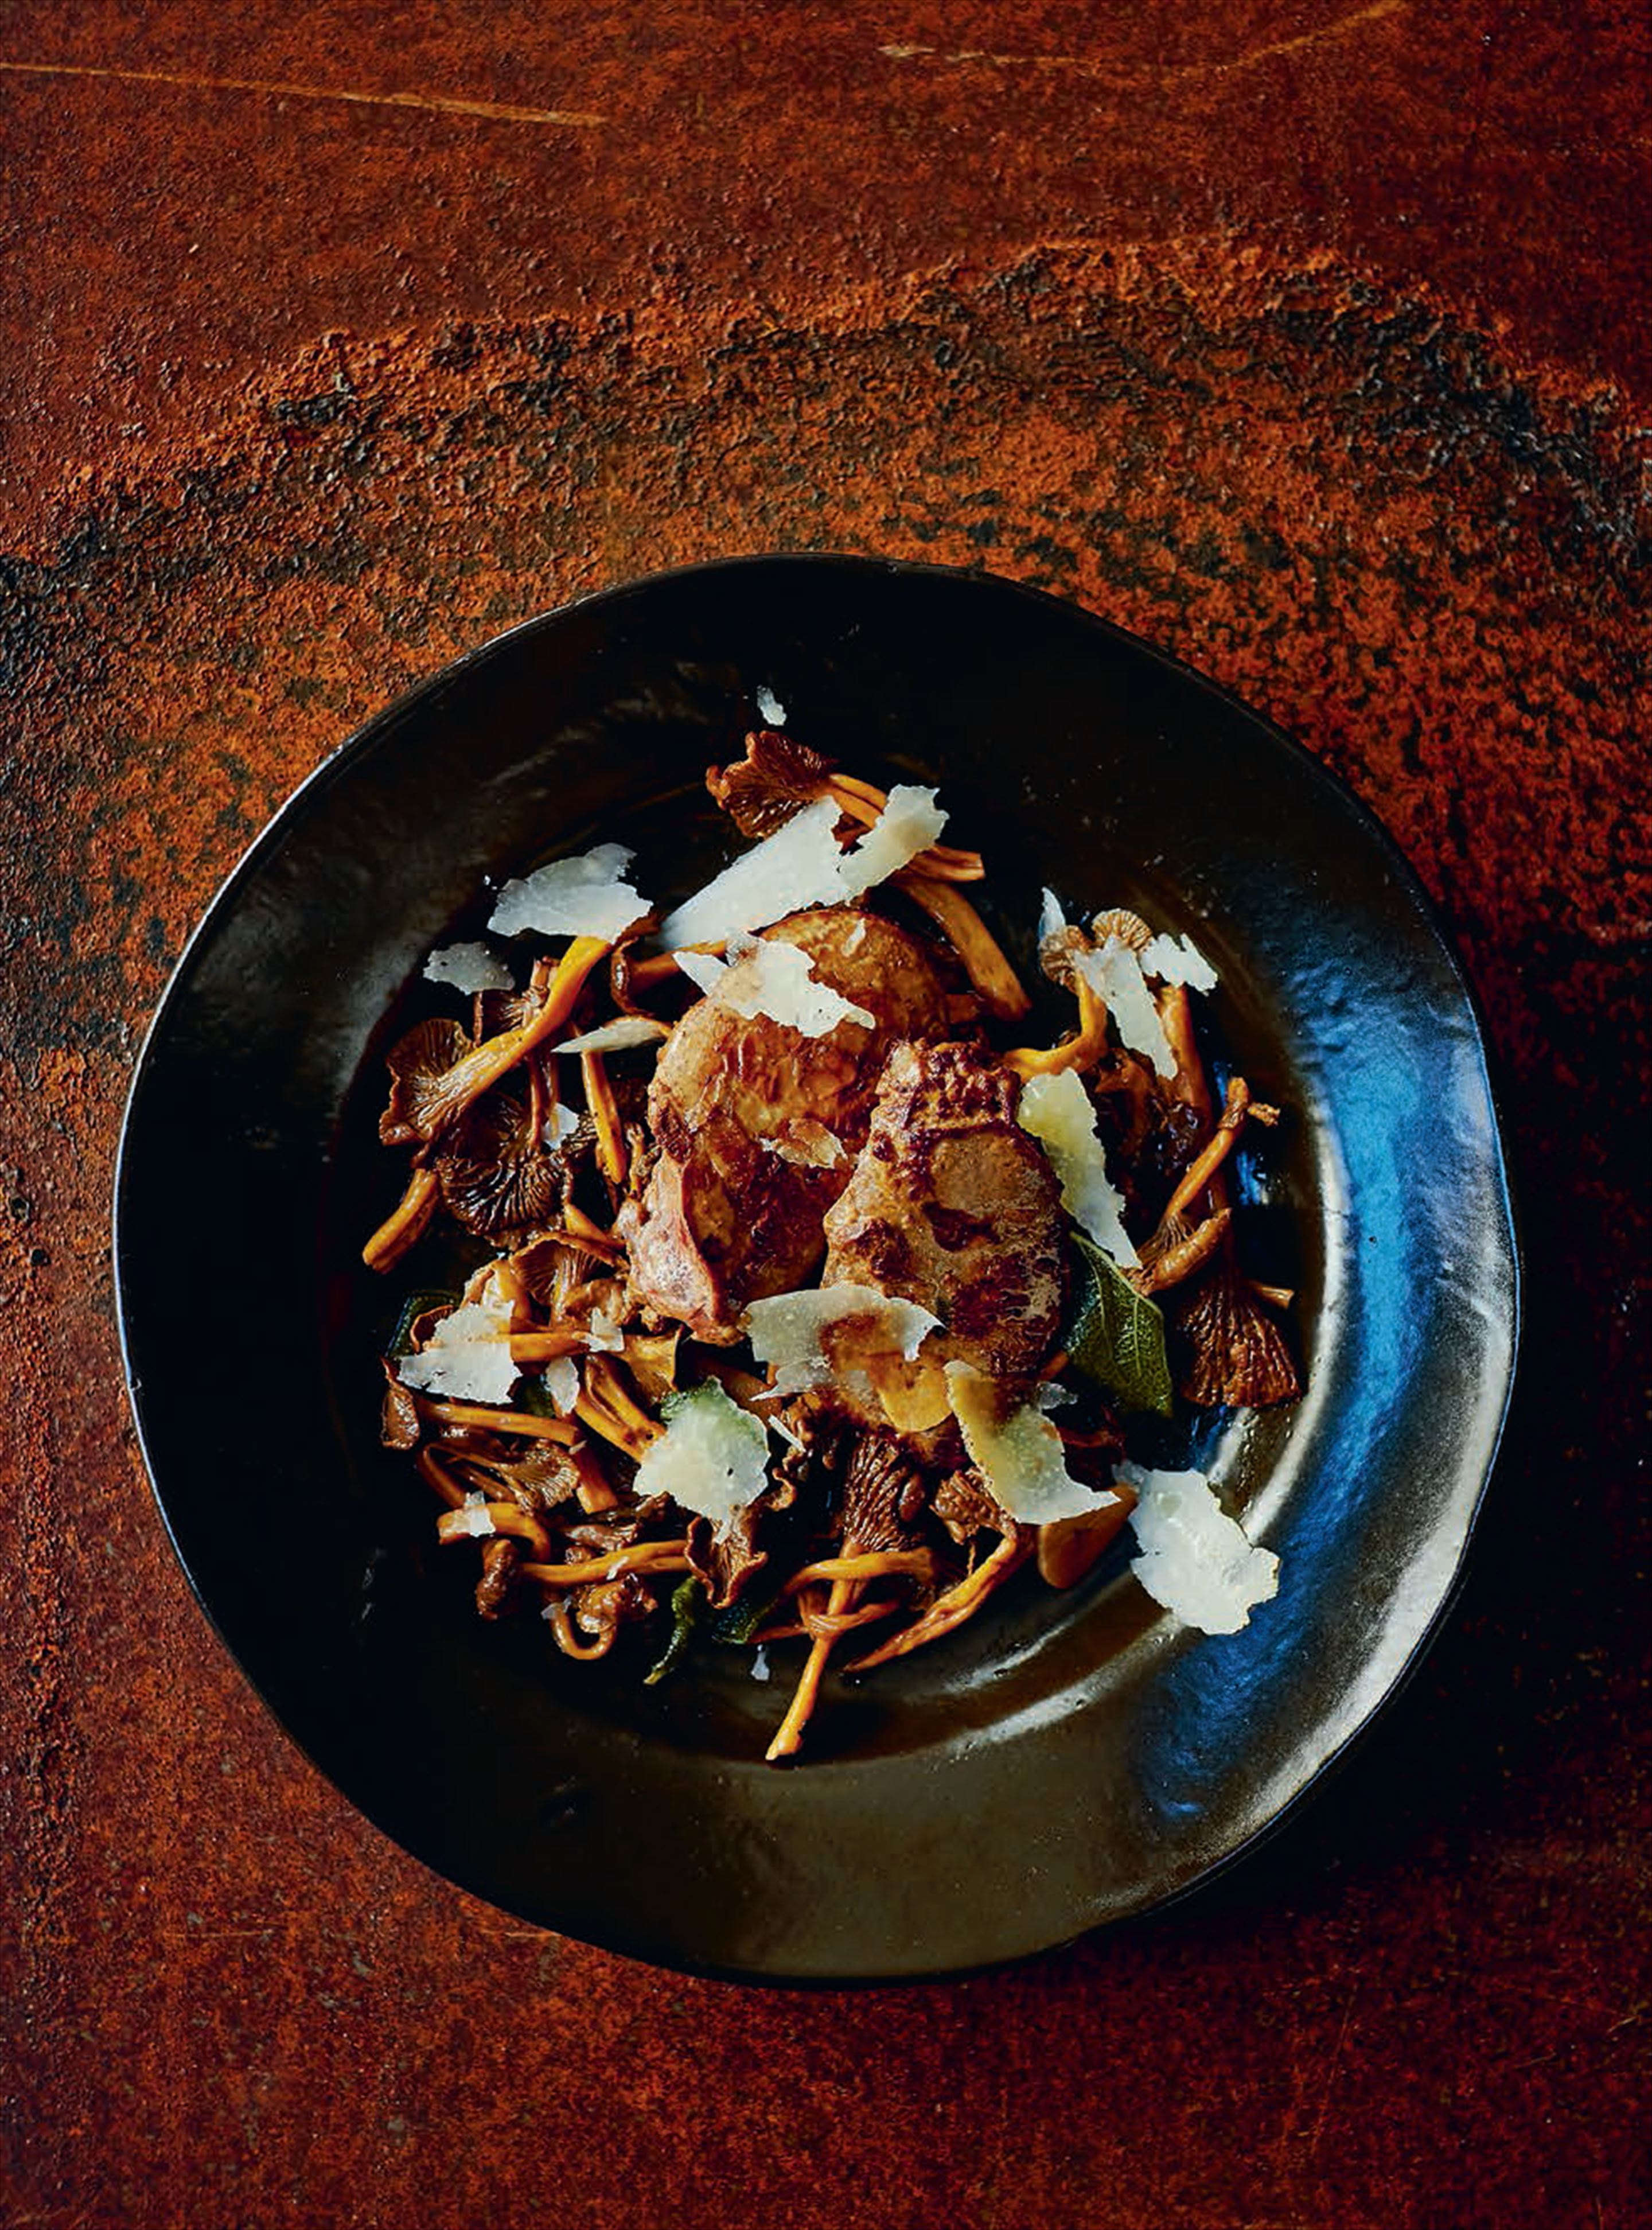 Duck livers & chanterelles